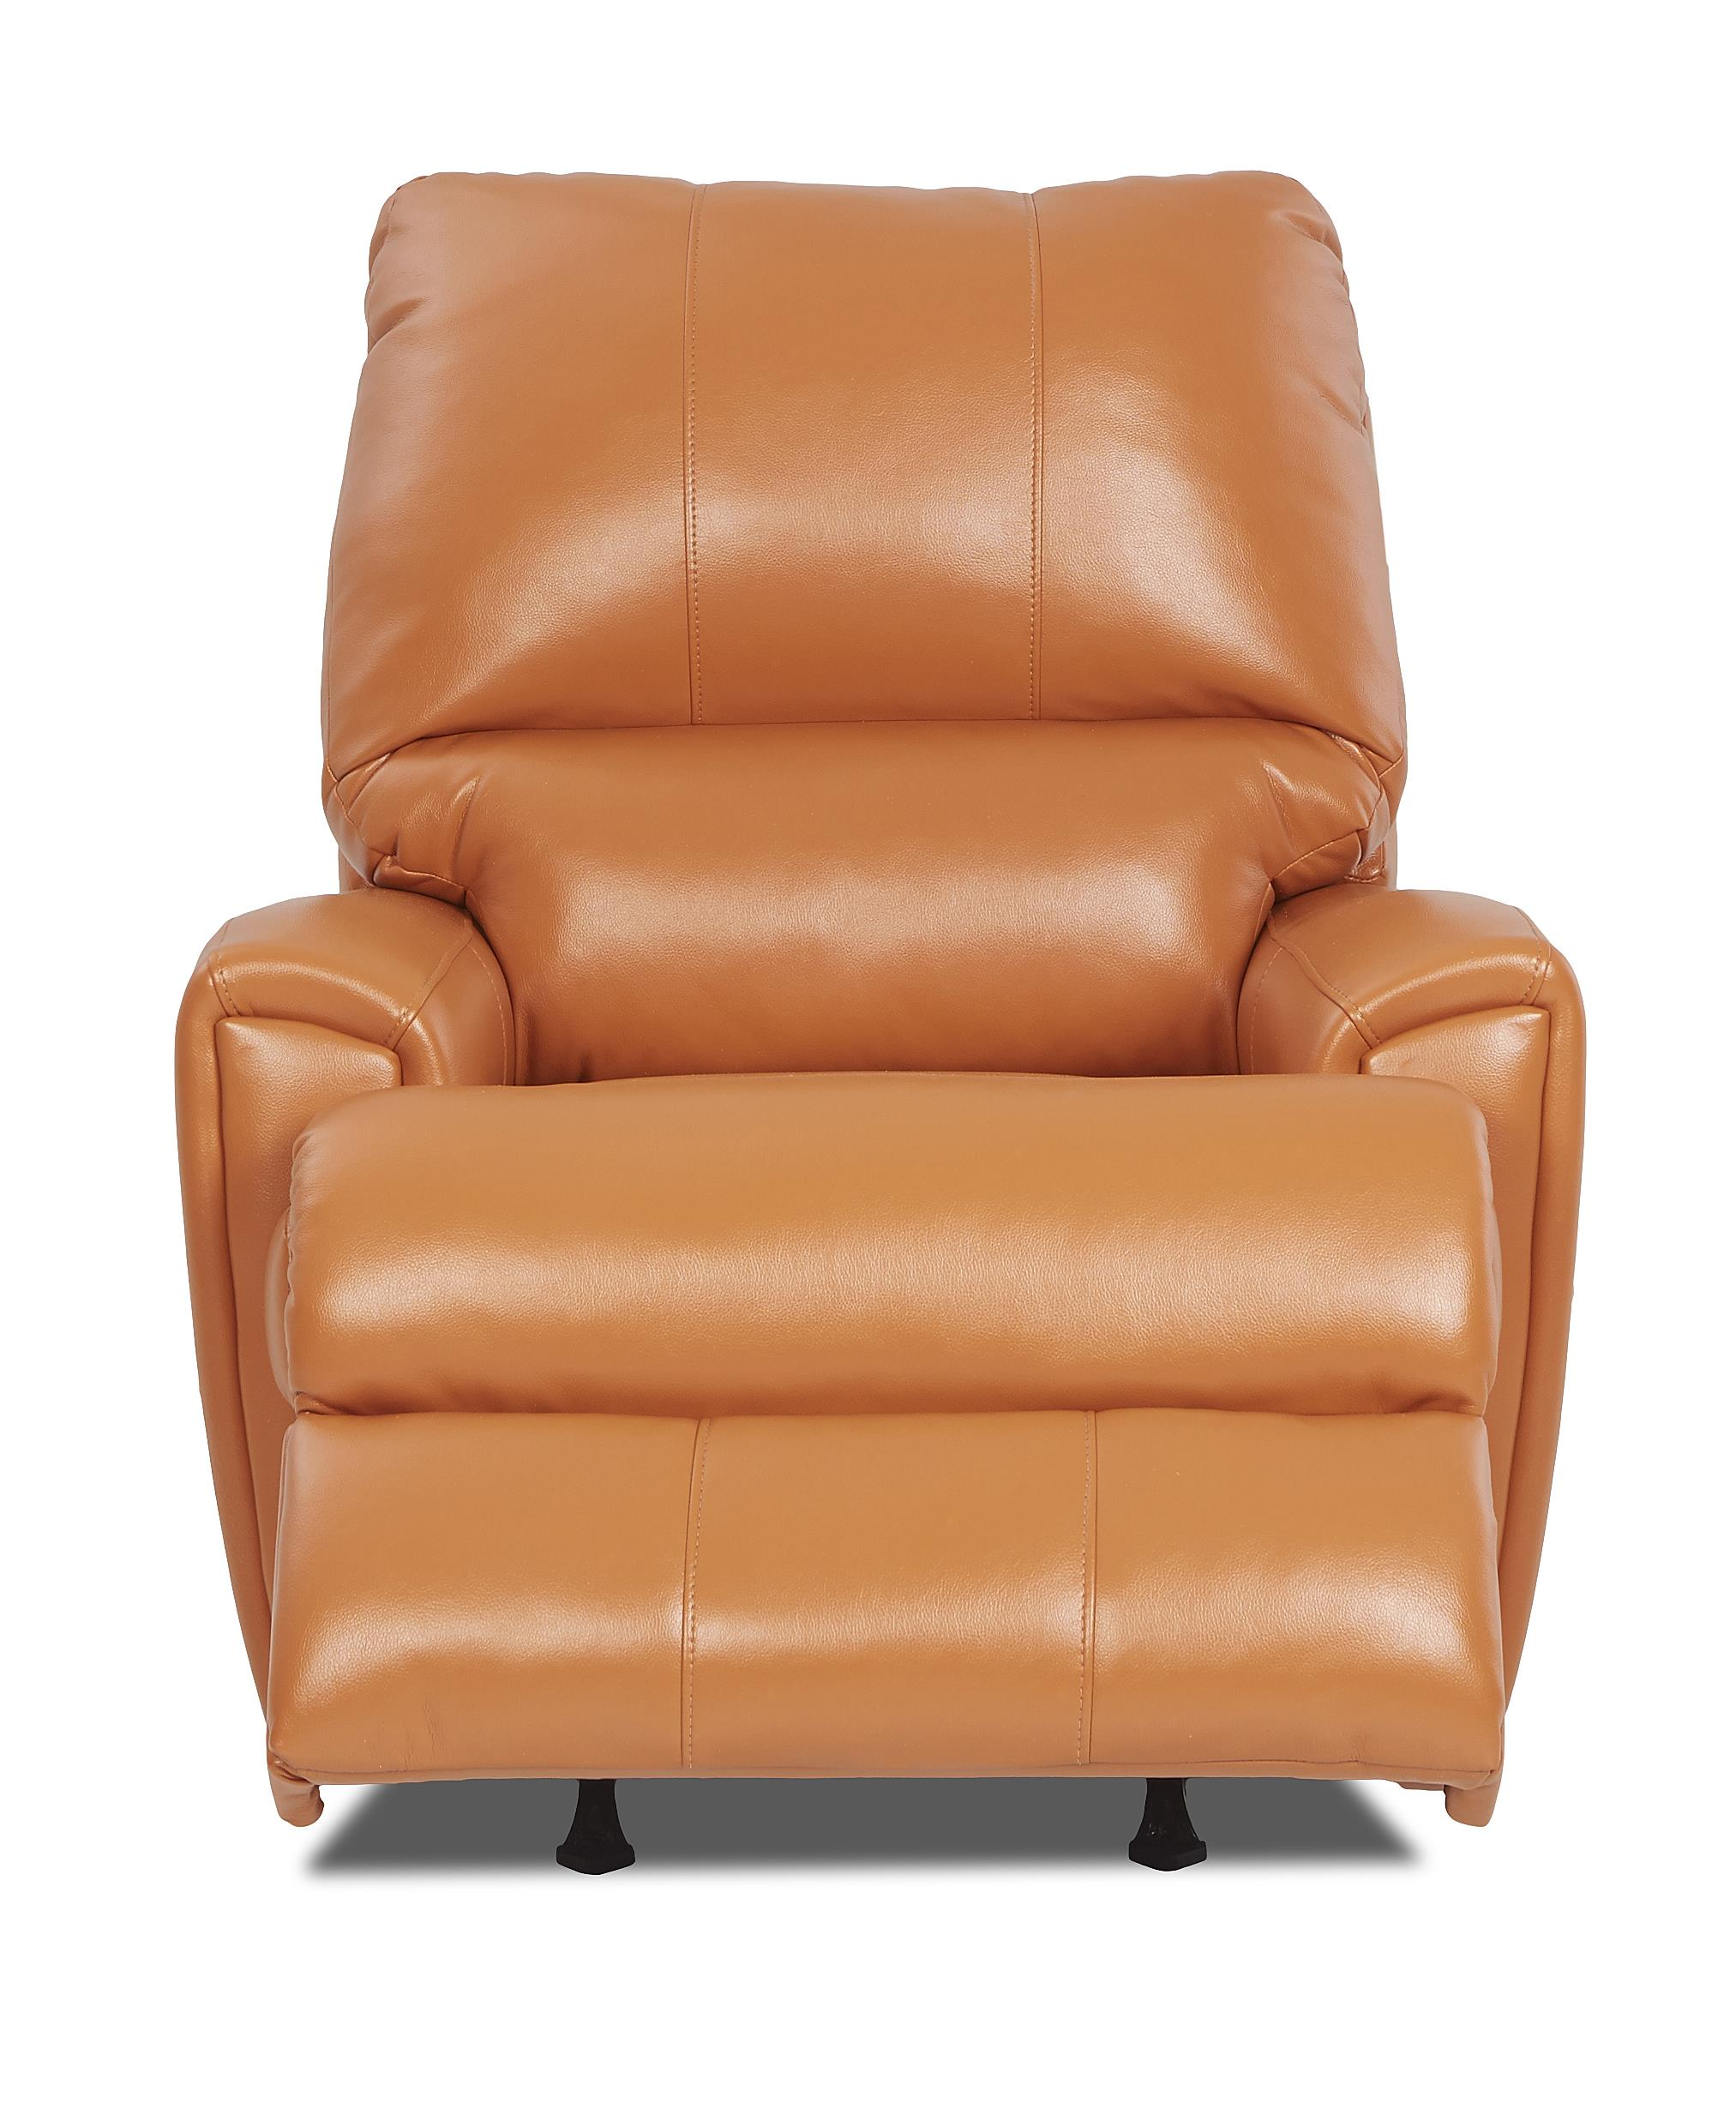 Klaussner julio transitional gliding reclining chair hudson 39 s furniture three way recliner - Sofa herbergt s werelds ...